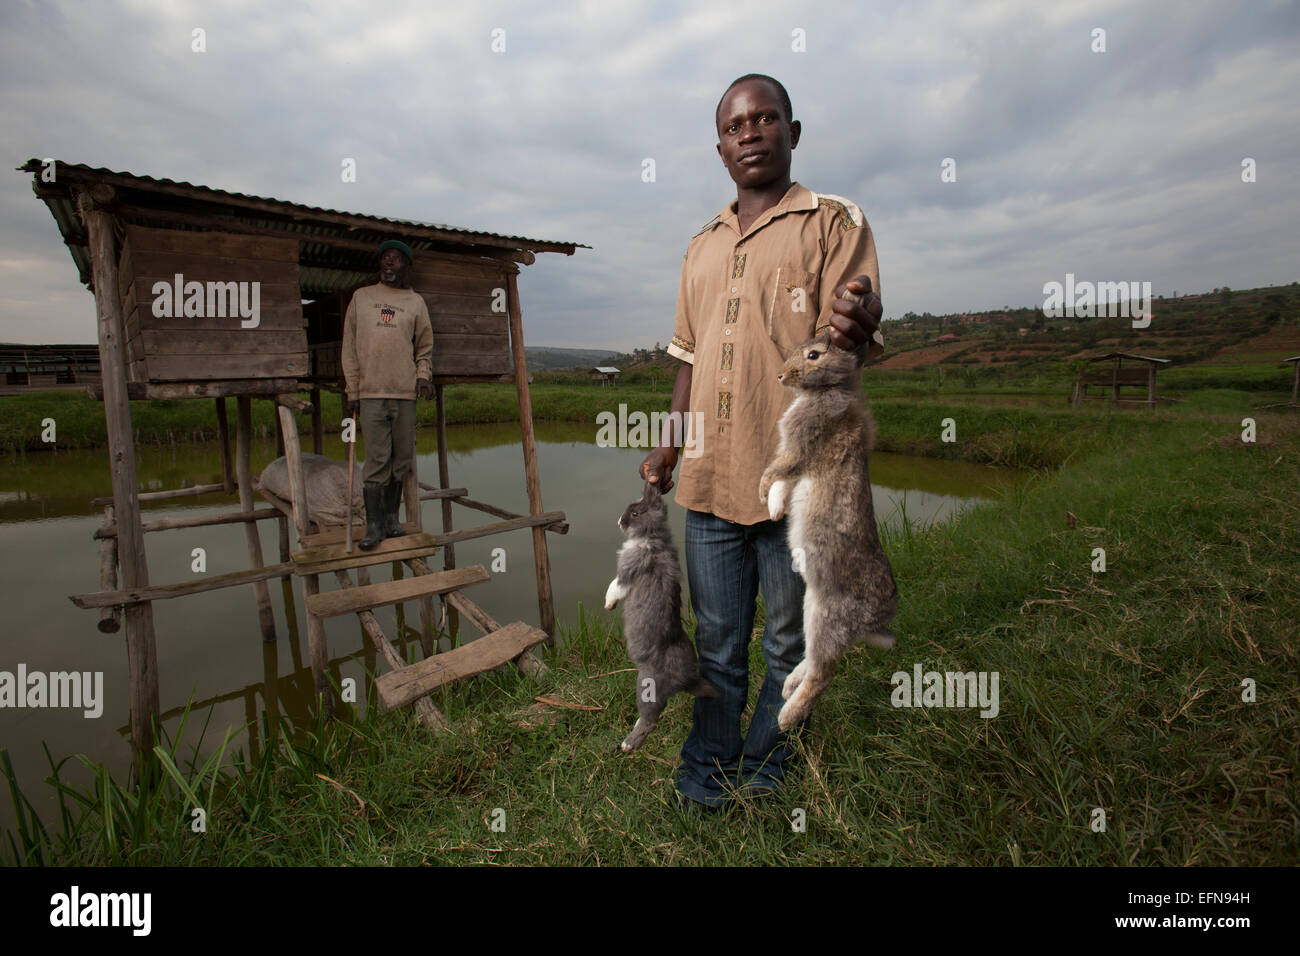 Rwandan farmers show off domestic rabbits outside their hutches which sit over a fishpond, Rwanda Stock Photo